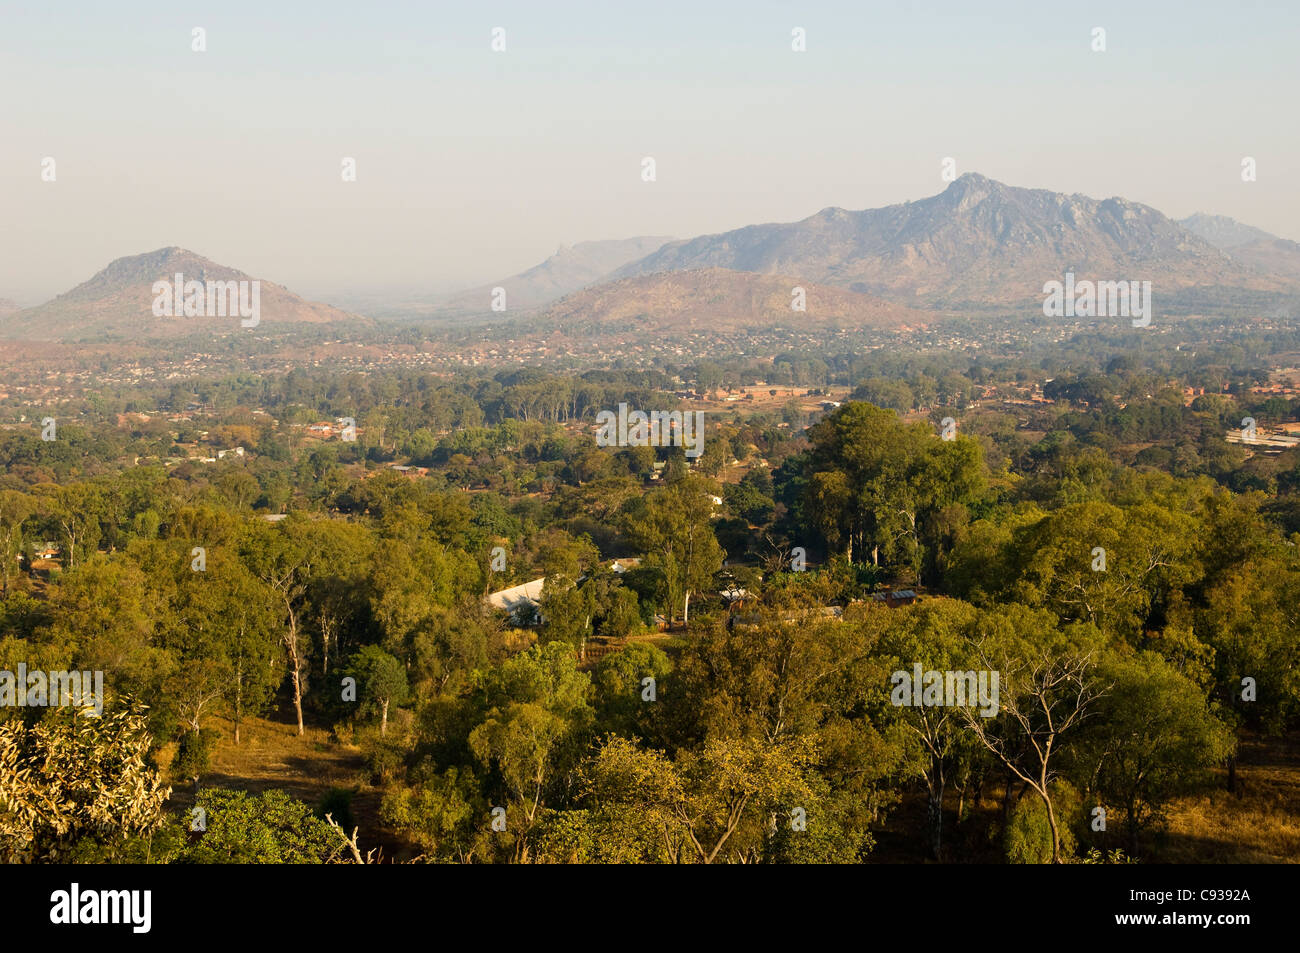 Malawi, Zomba.  View over the town of Zomba from the lower slopes of Zomba Plateau. Stock Photo